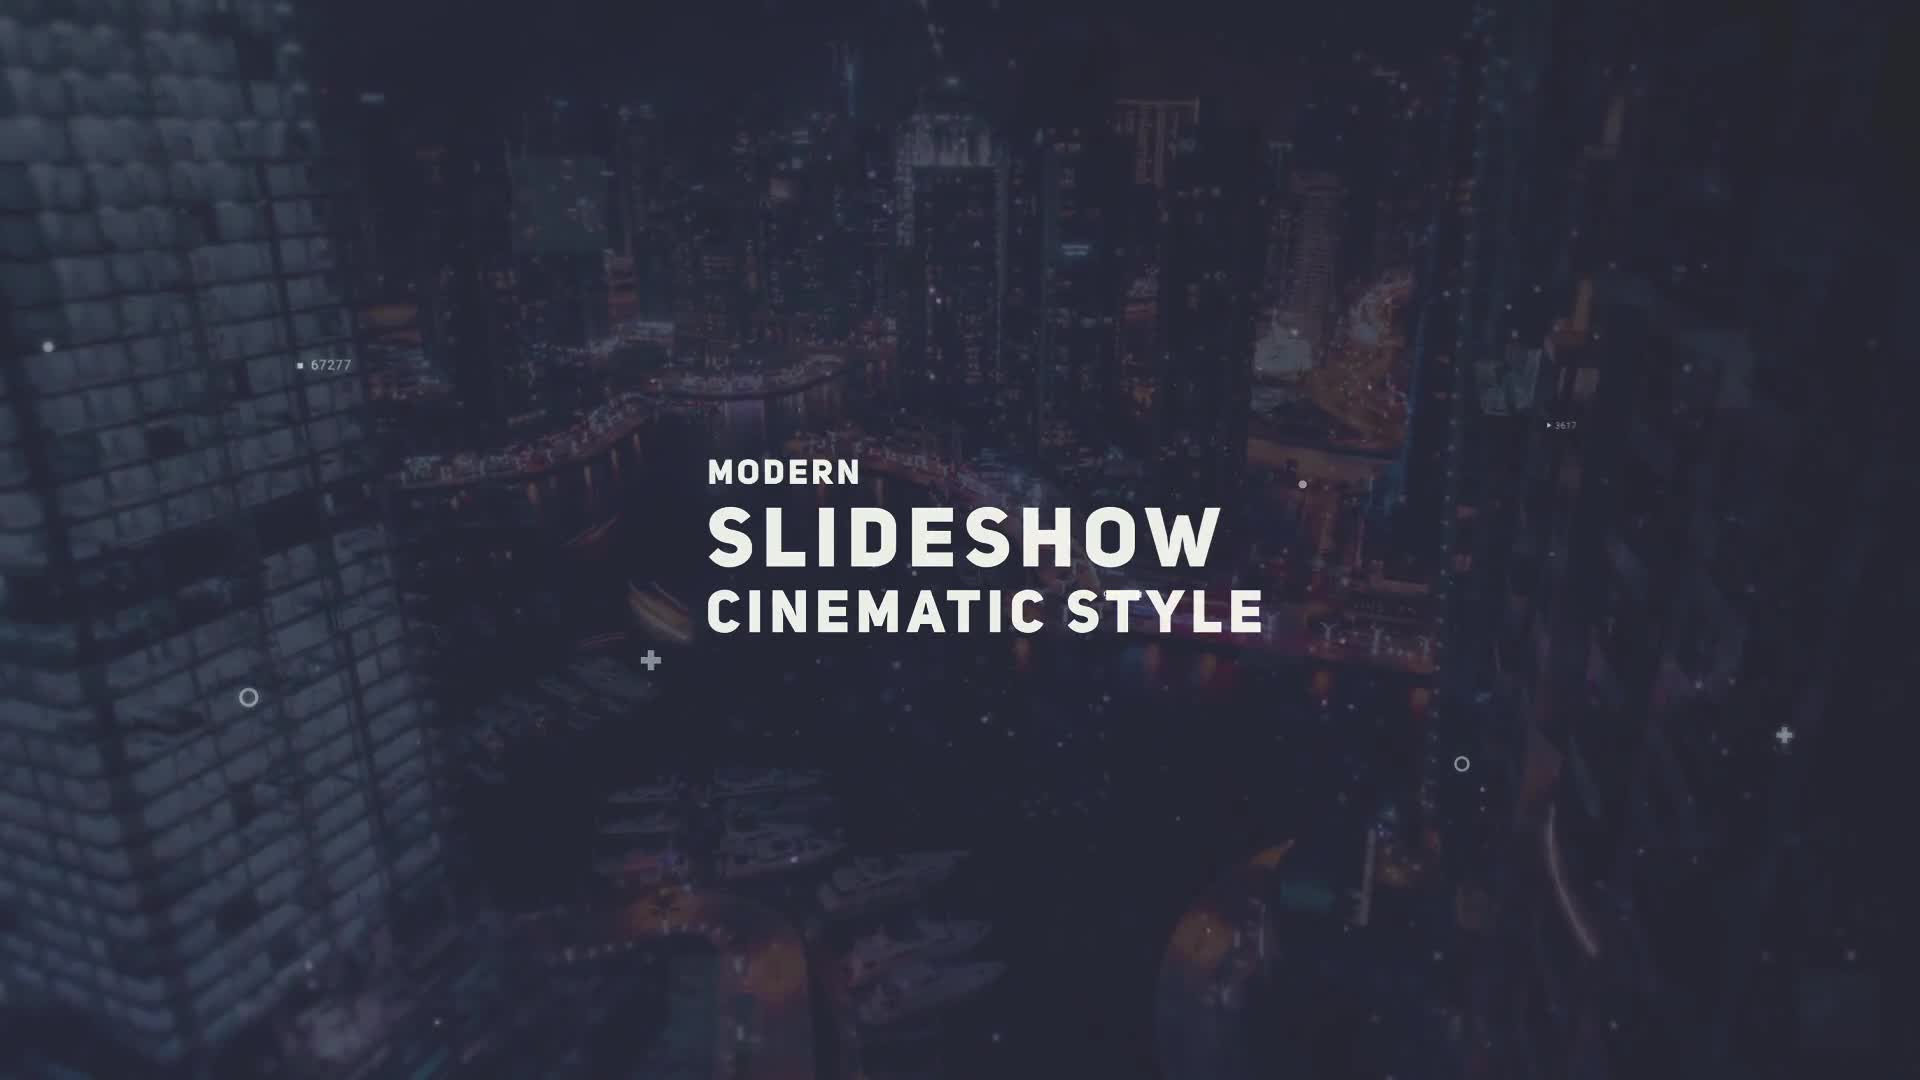 The Slideshow | Intro Videohive 22197576 After Effects Image 1